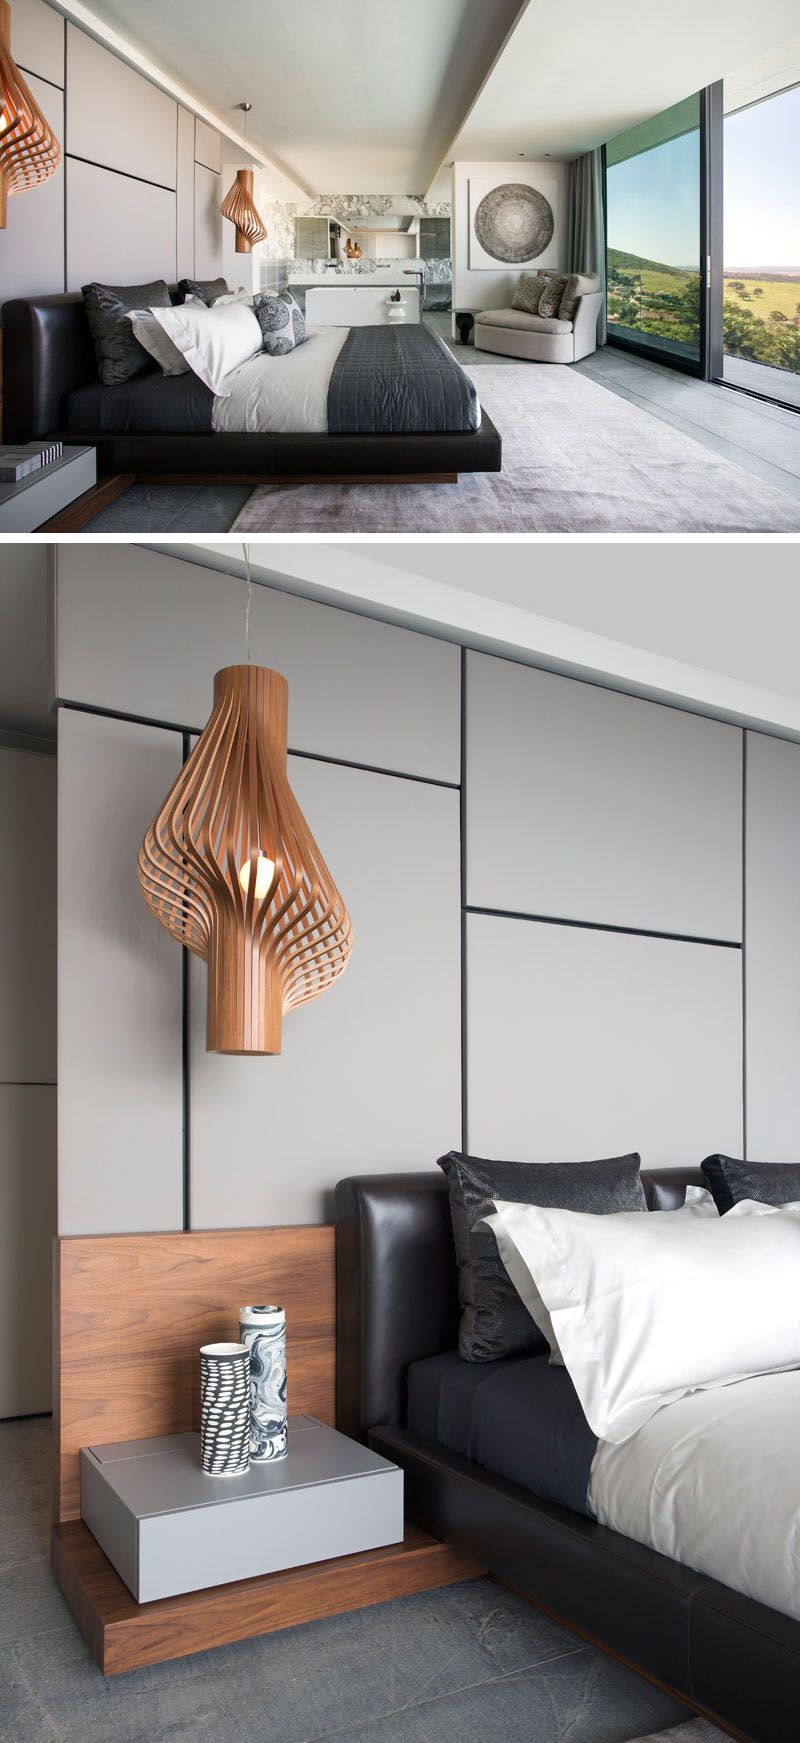 In This Modern Master Bedroom Sculptural Wood Pendant Lights Act As Bedside Lamps Whil Bedroom Design Inspiration Modern Master Bedroom Modern Bedroom Design